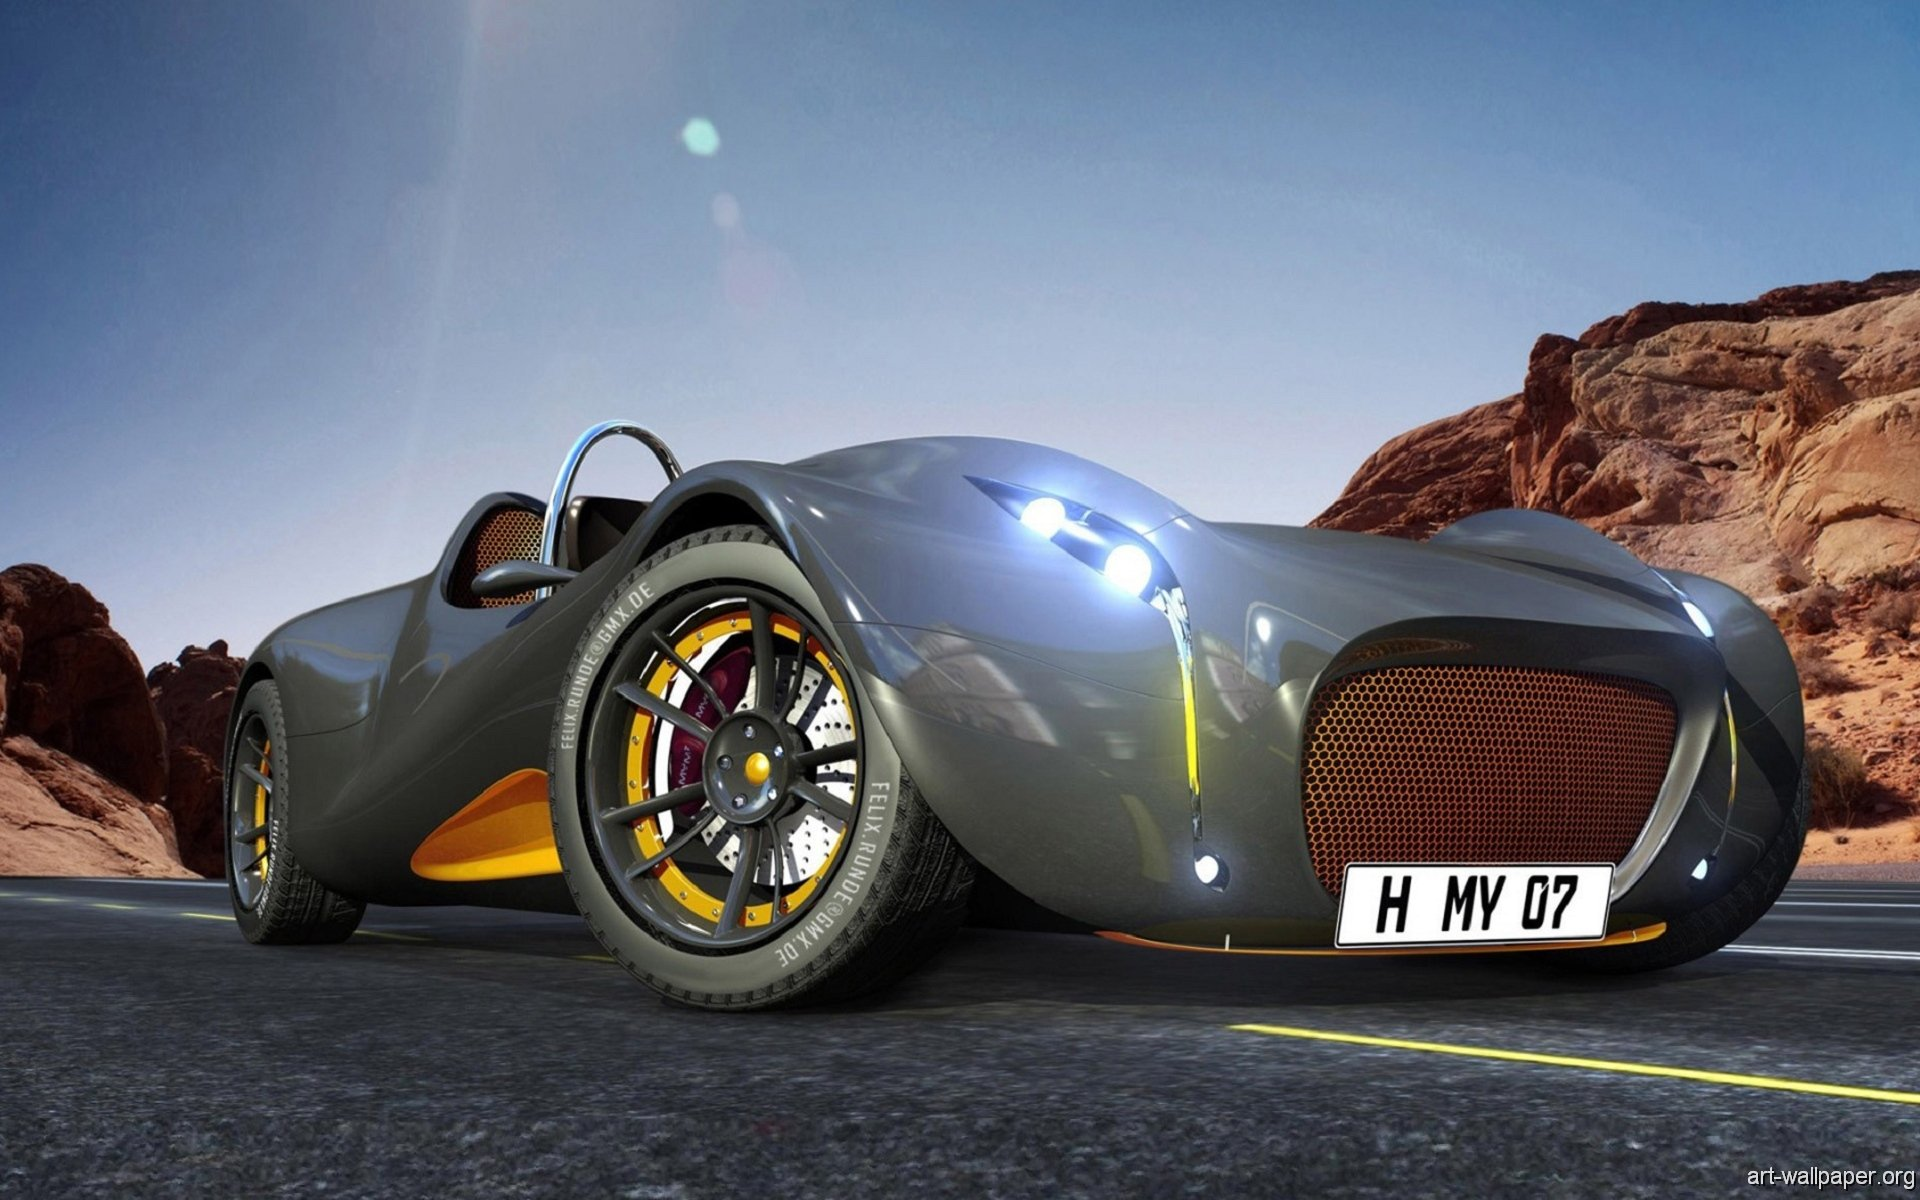 Free Download Image 3d Sport Car Wallpaper Pc Android Iphone And Ipad Wallpapers 1920x1200 For Your Desktop Mobile Tablet Explore 49 3d Cars Wallpapers For Desktop 3d Wallpaper For